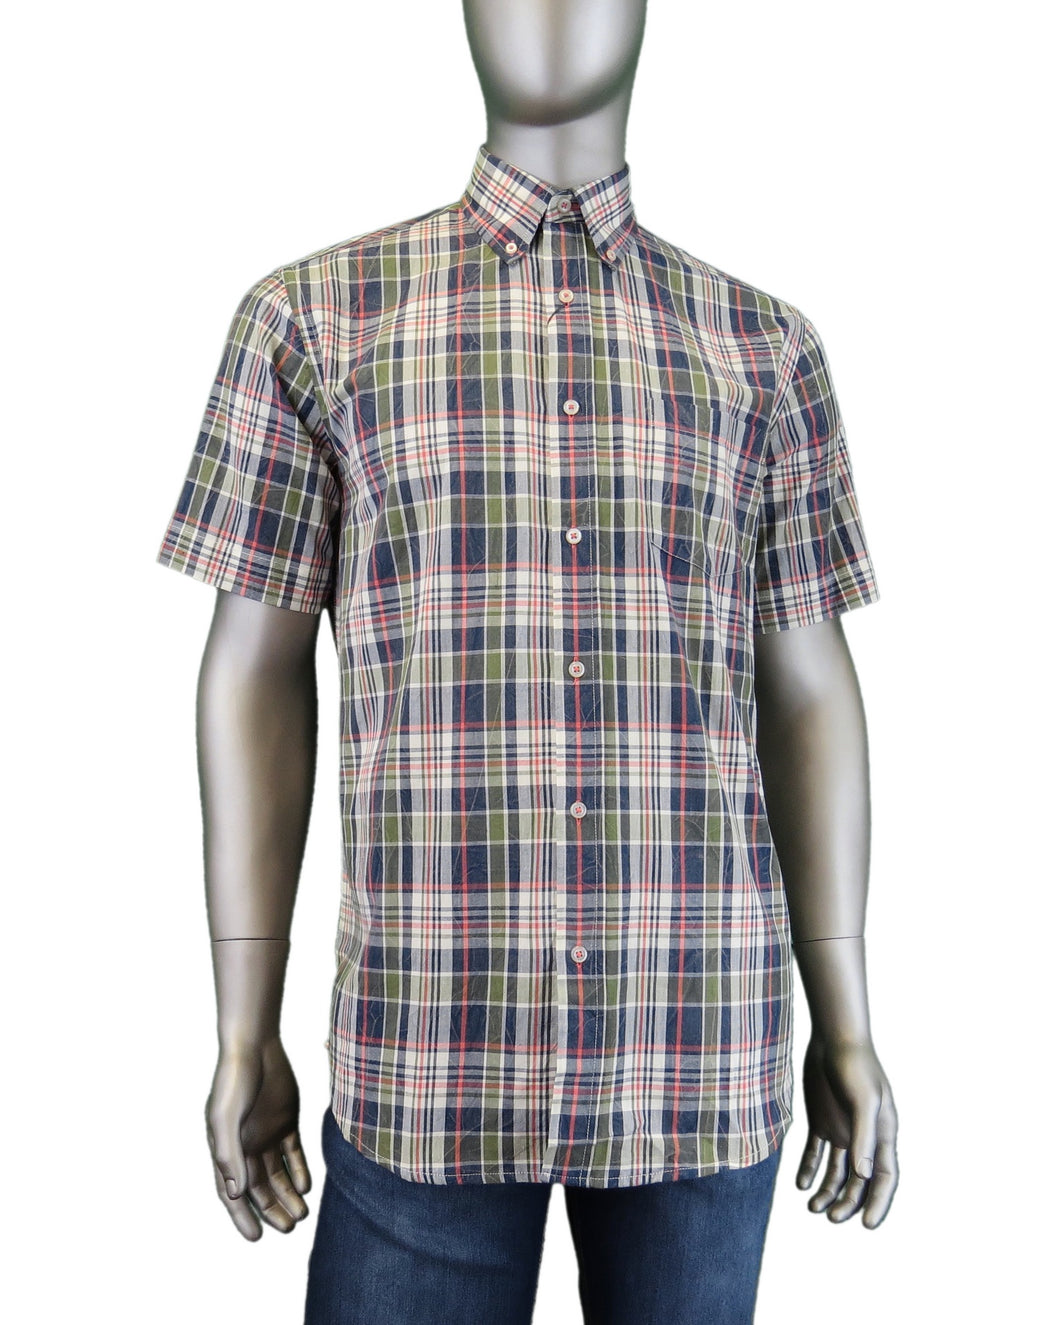 Viyella | 456310 | Short Sleeve Sport Shirt | Hunter Green